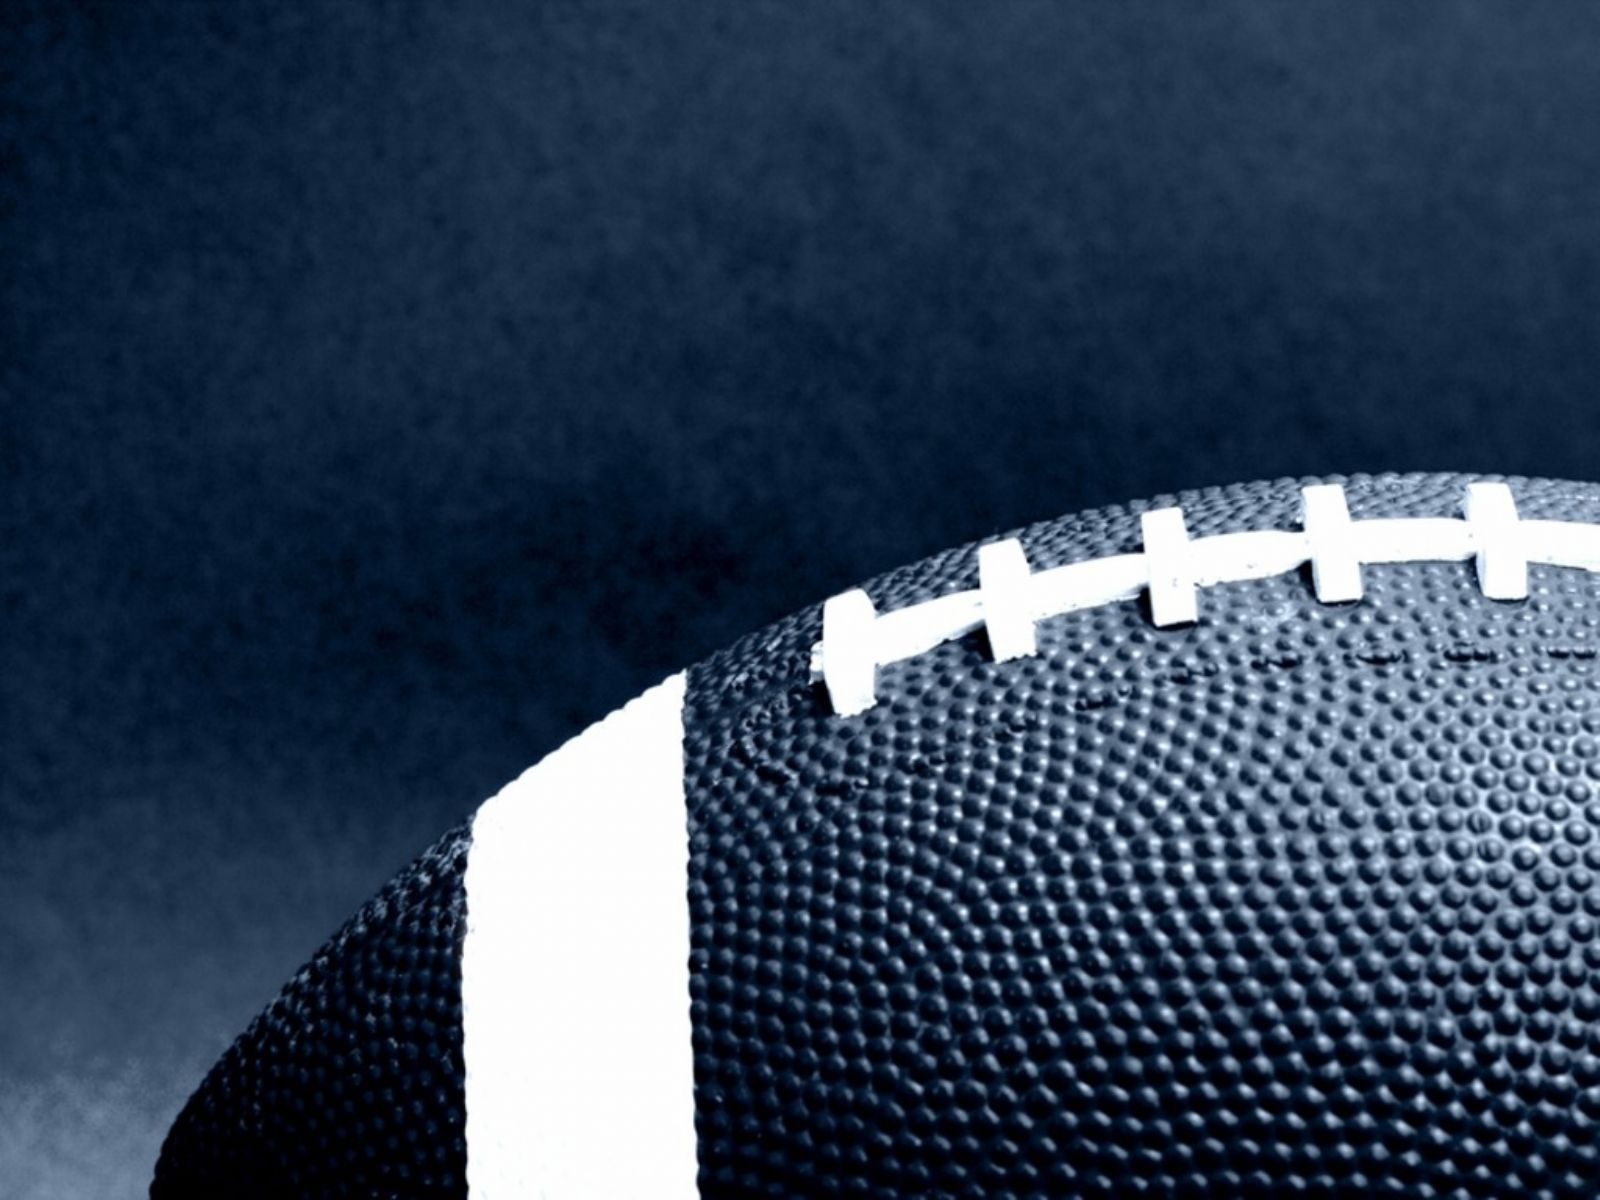 Free Football Wallpapers